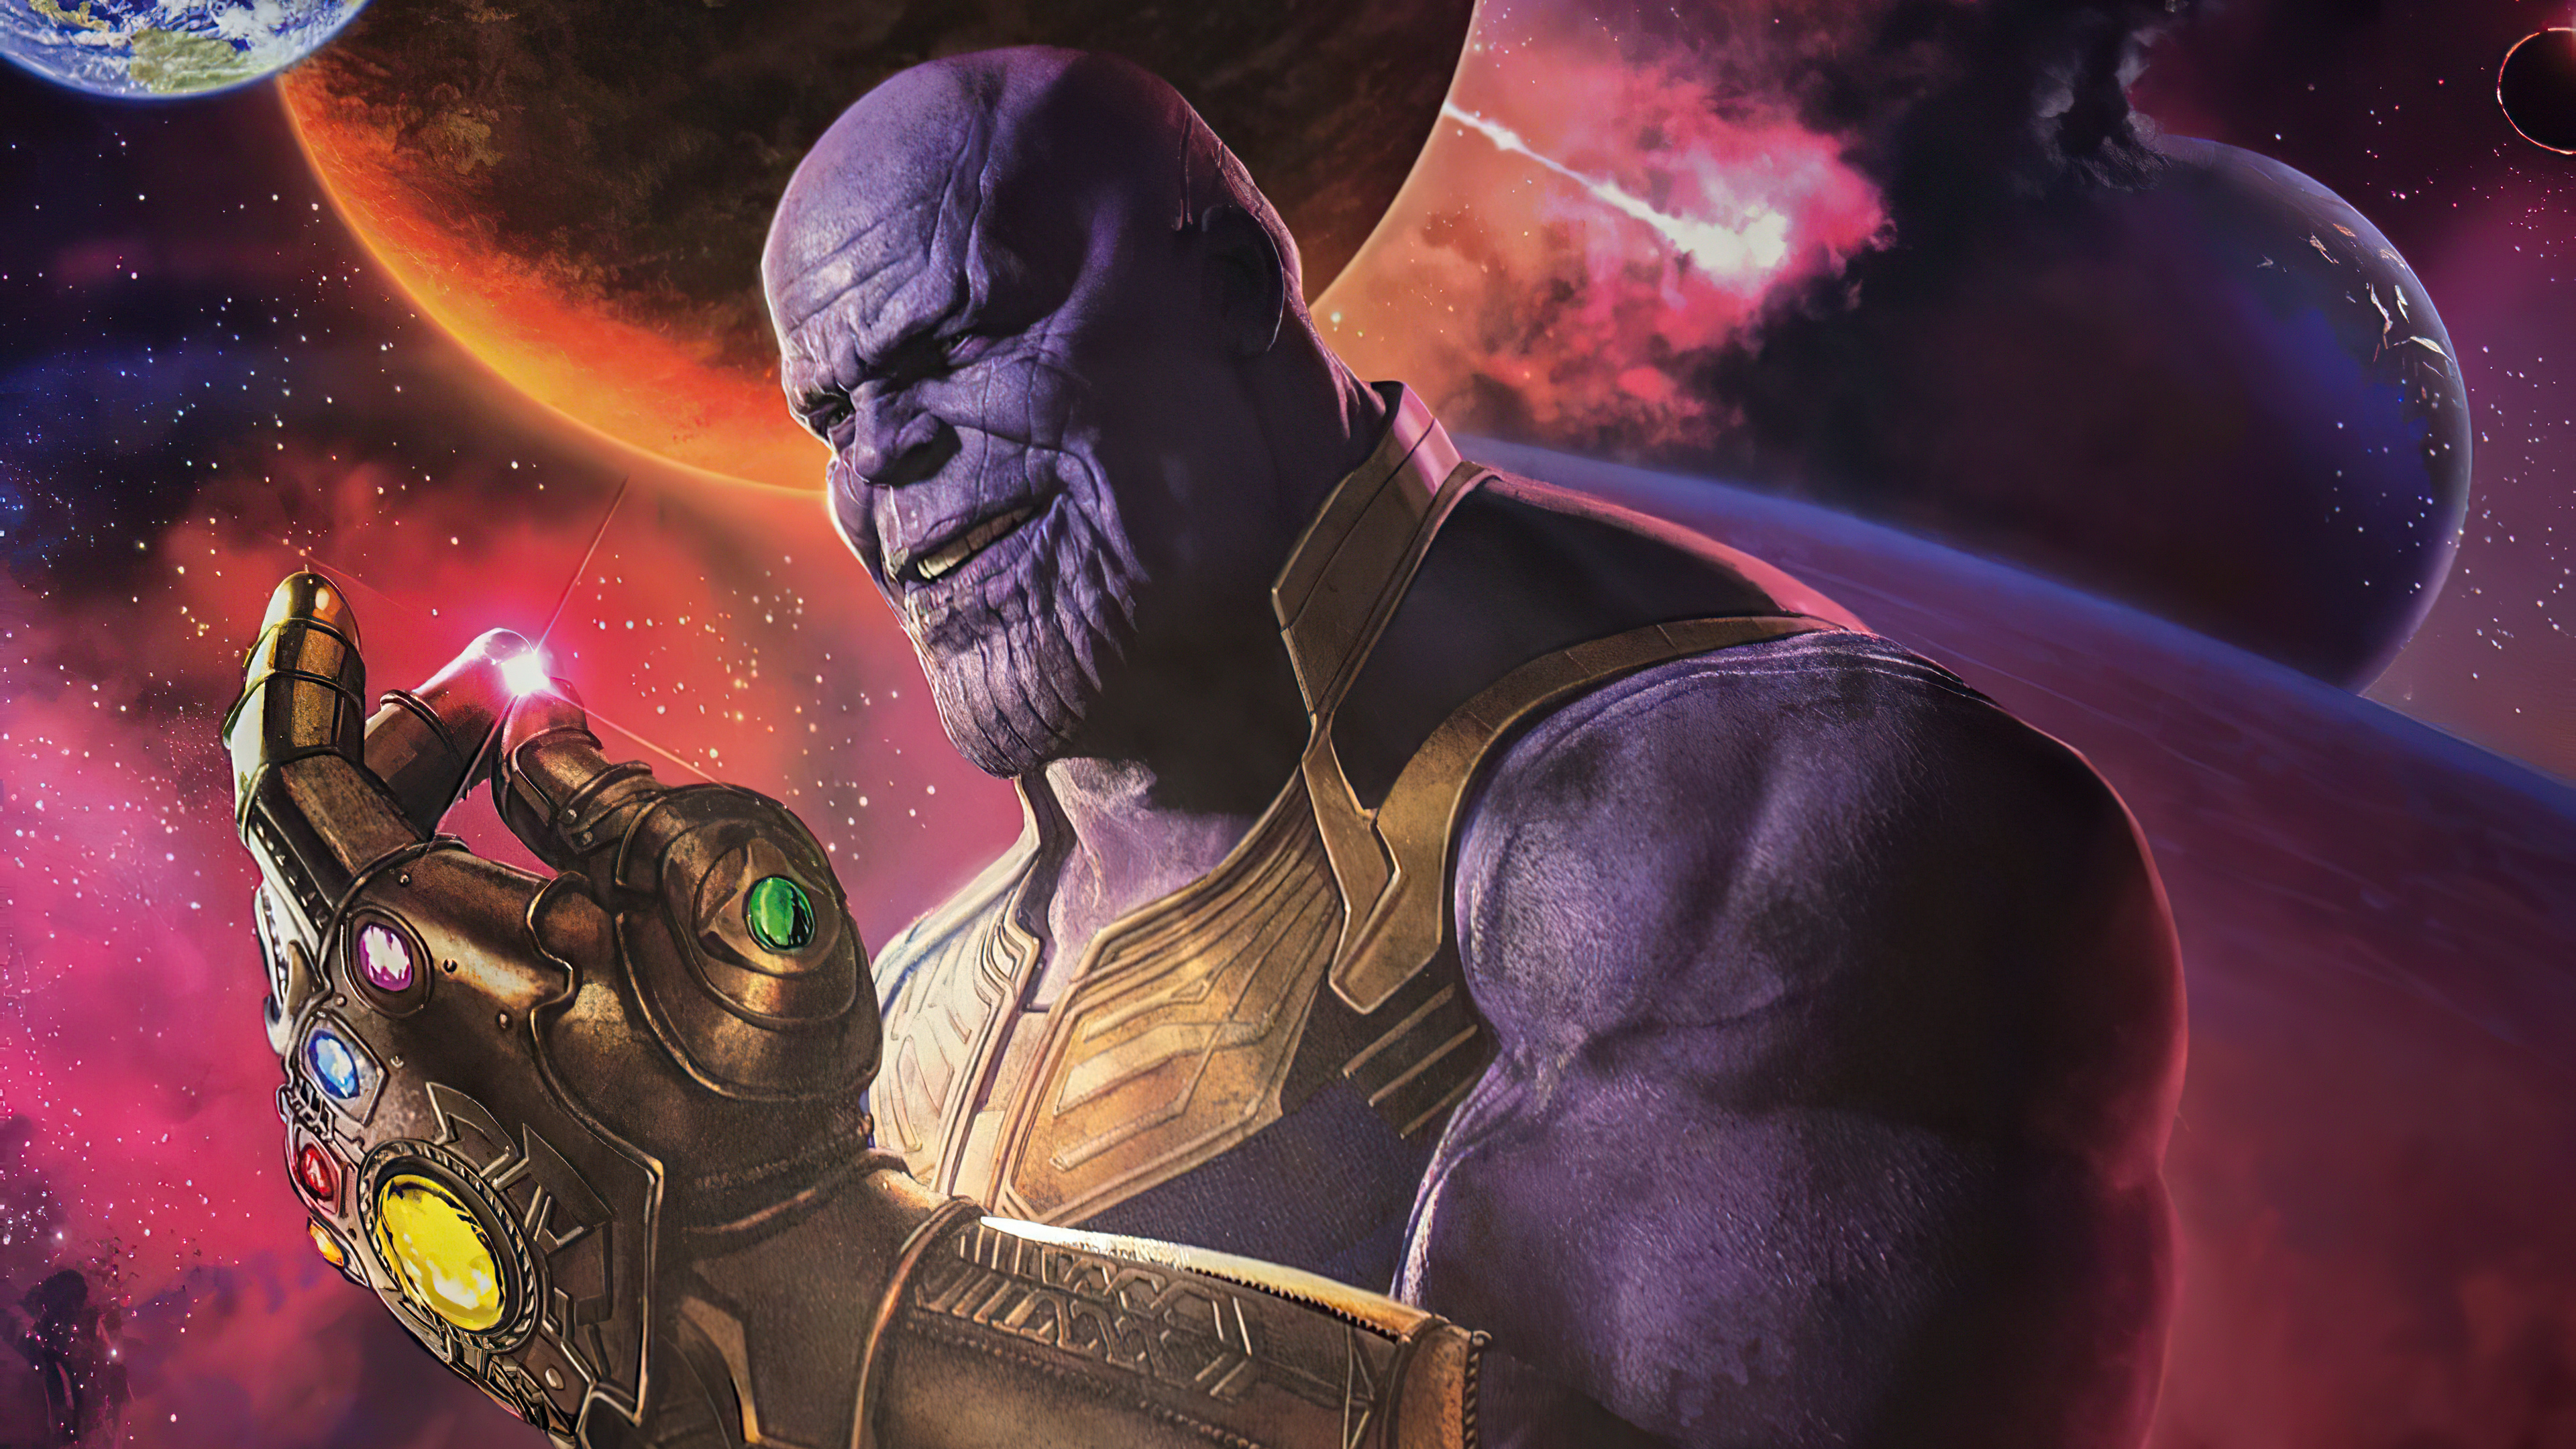 Wallpaper Thanos snaping fingers